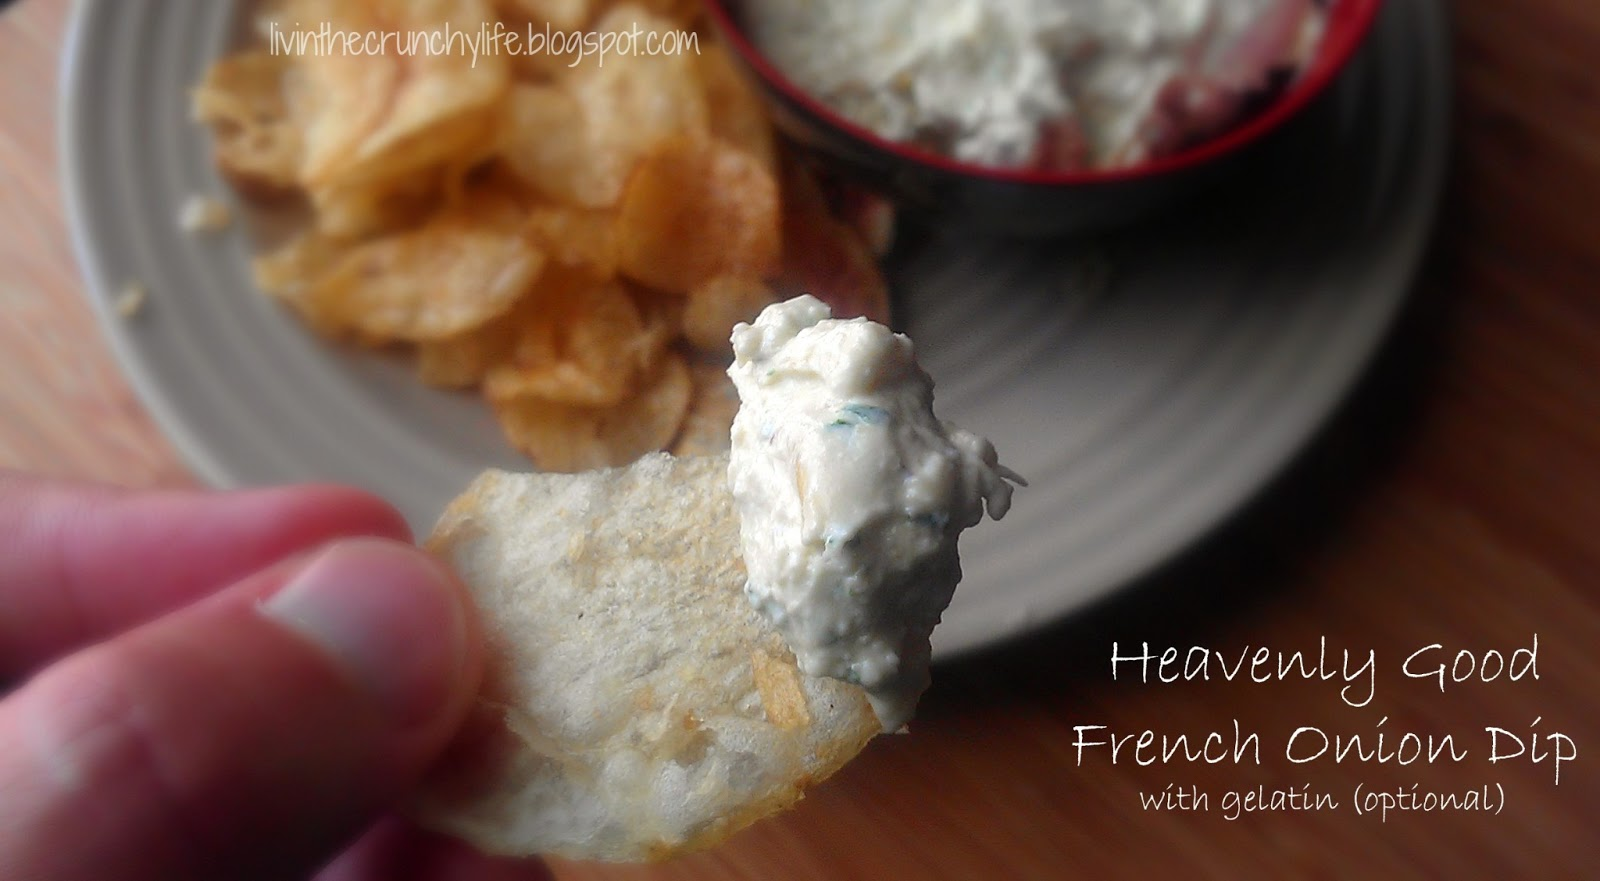 Heavenly Good French Onion Dip with (optional) gelatin